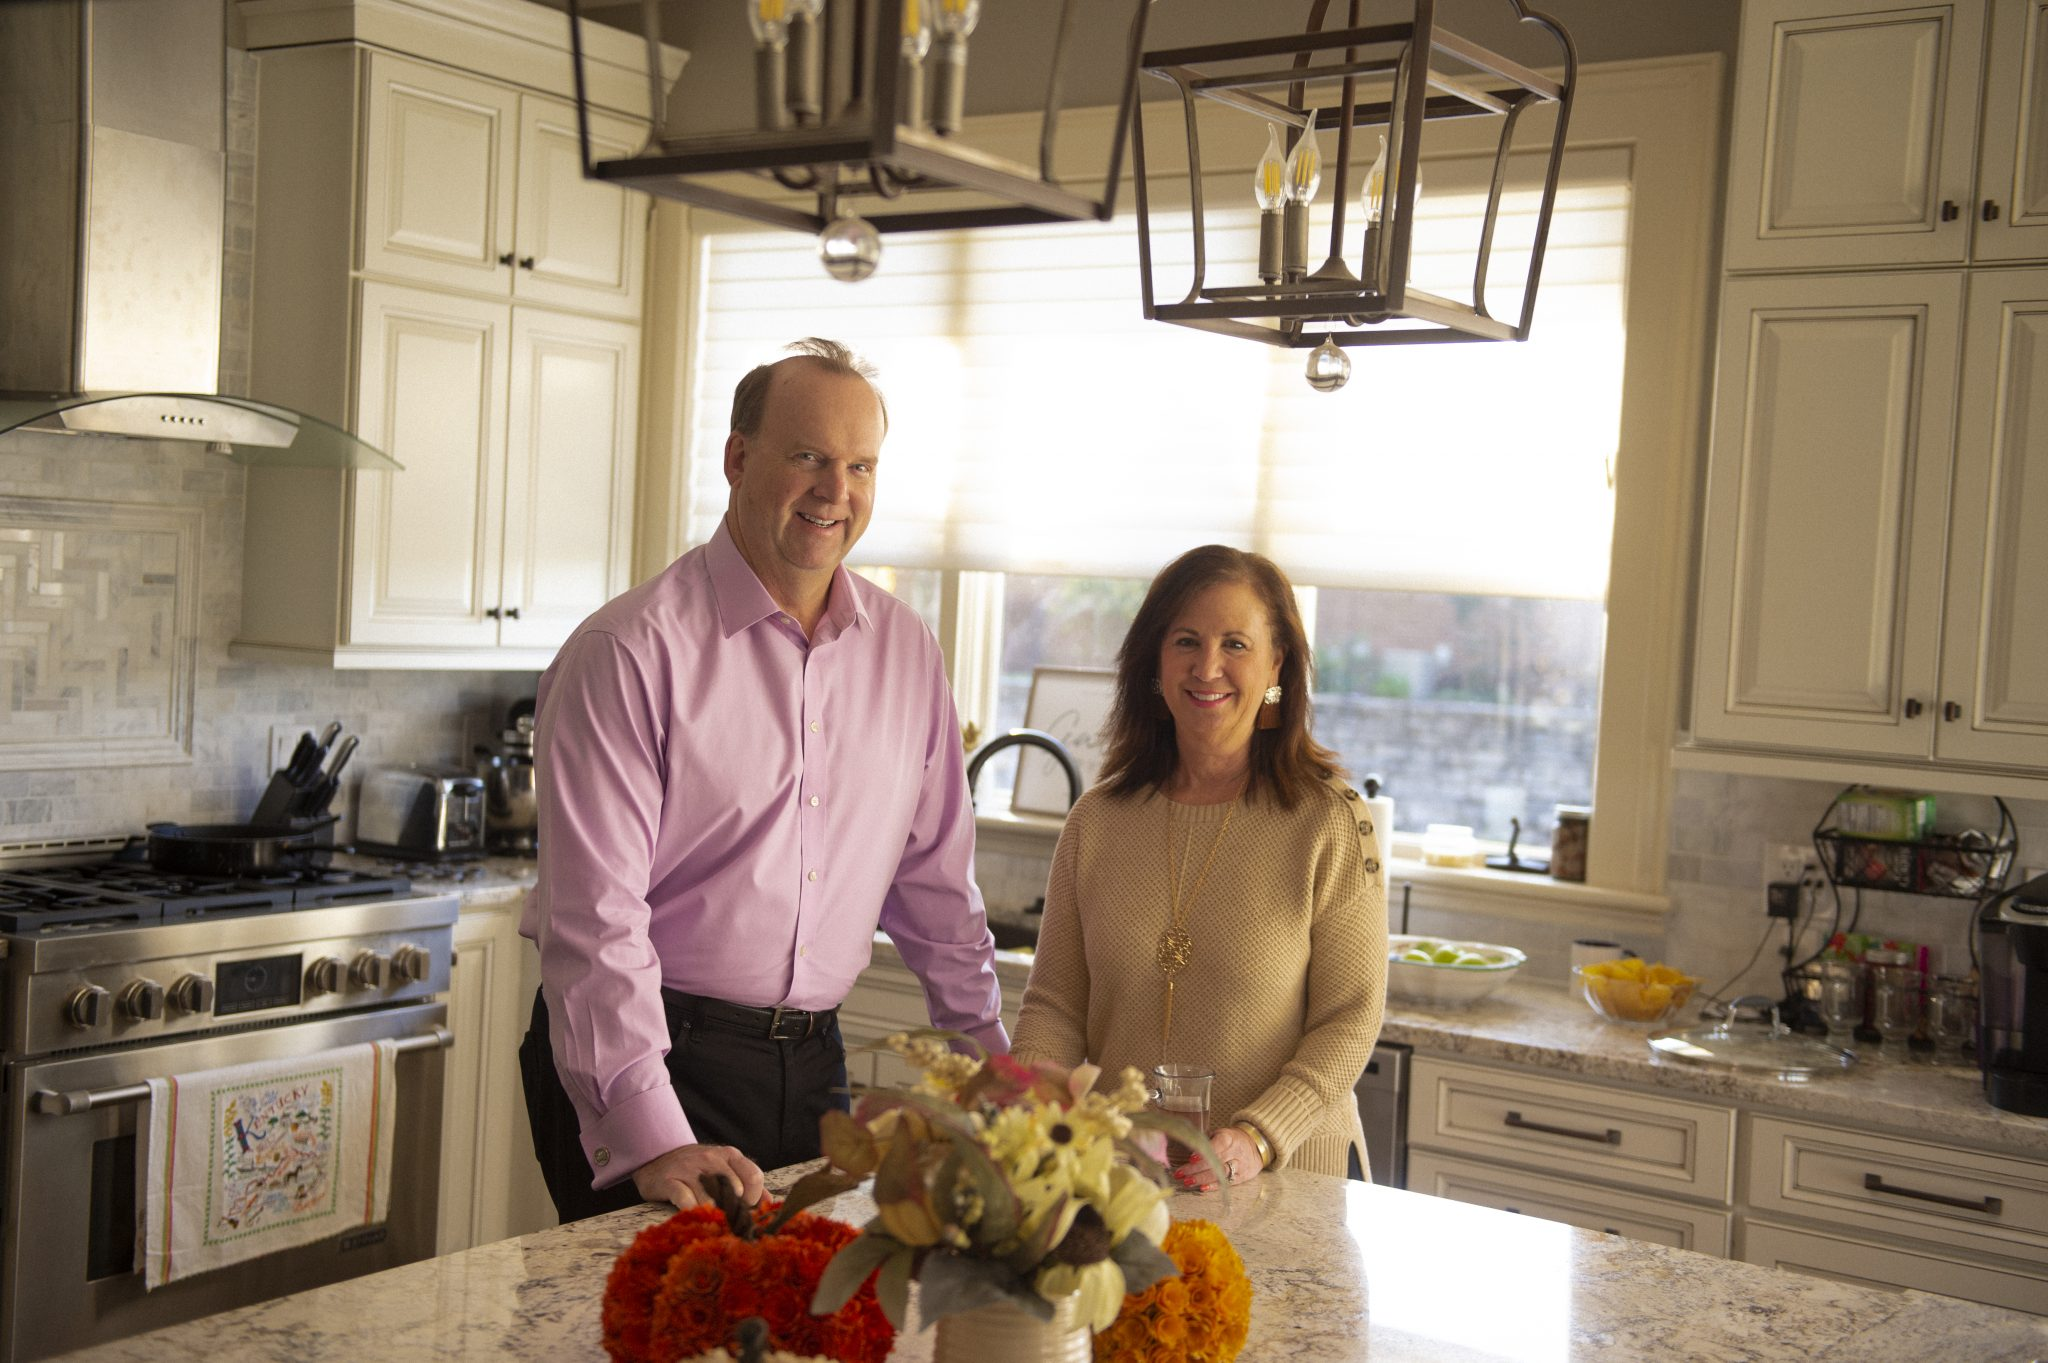 Mark Mead and his wife stand behind the kitchen island in their home.